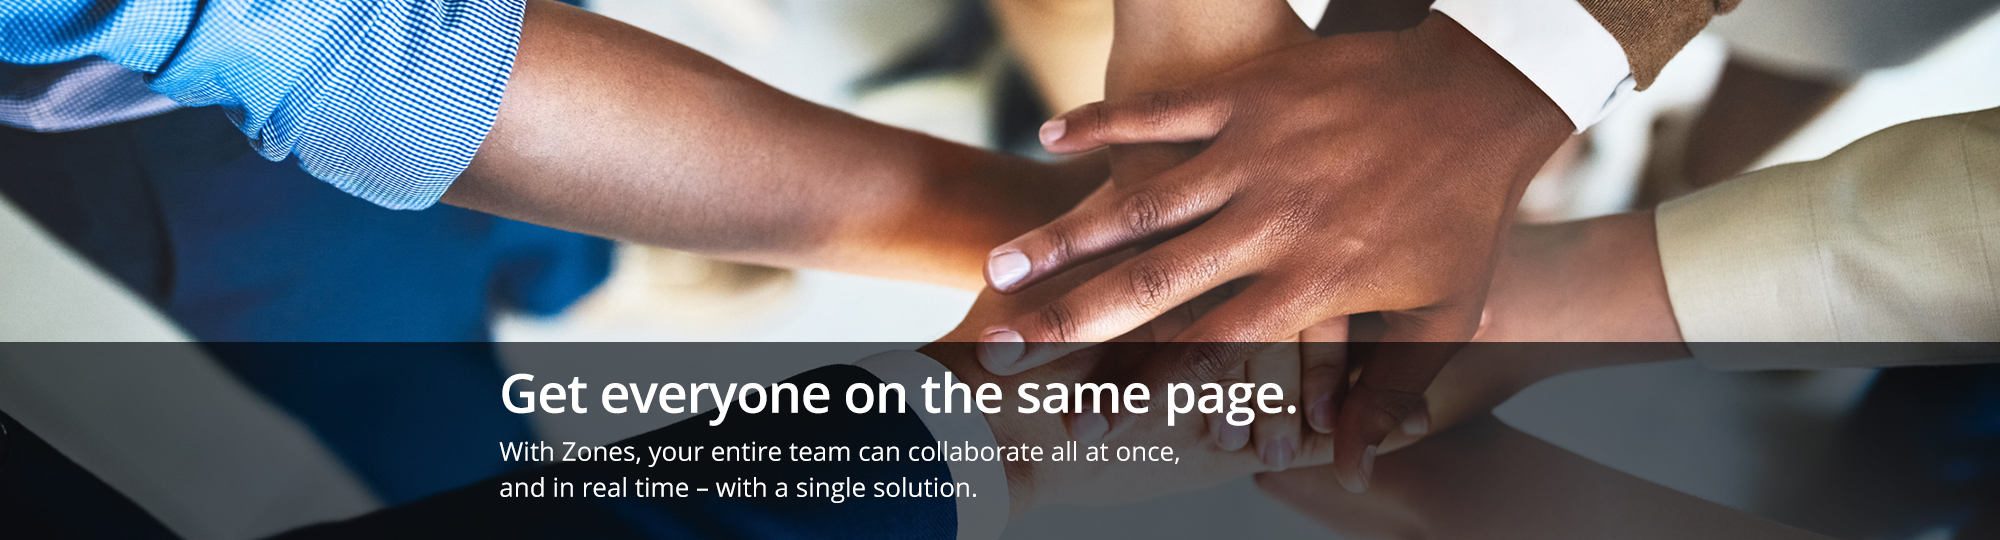 Get everyone on the same page. With Zones, your entire team can collaborate all at once, and in real time ? with a single solution.